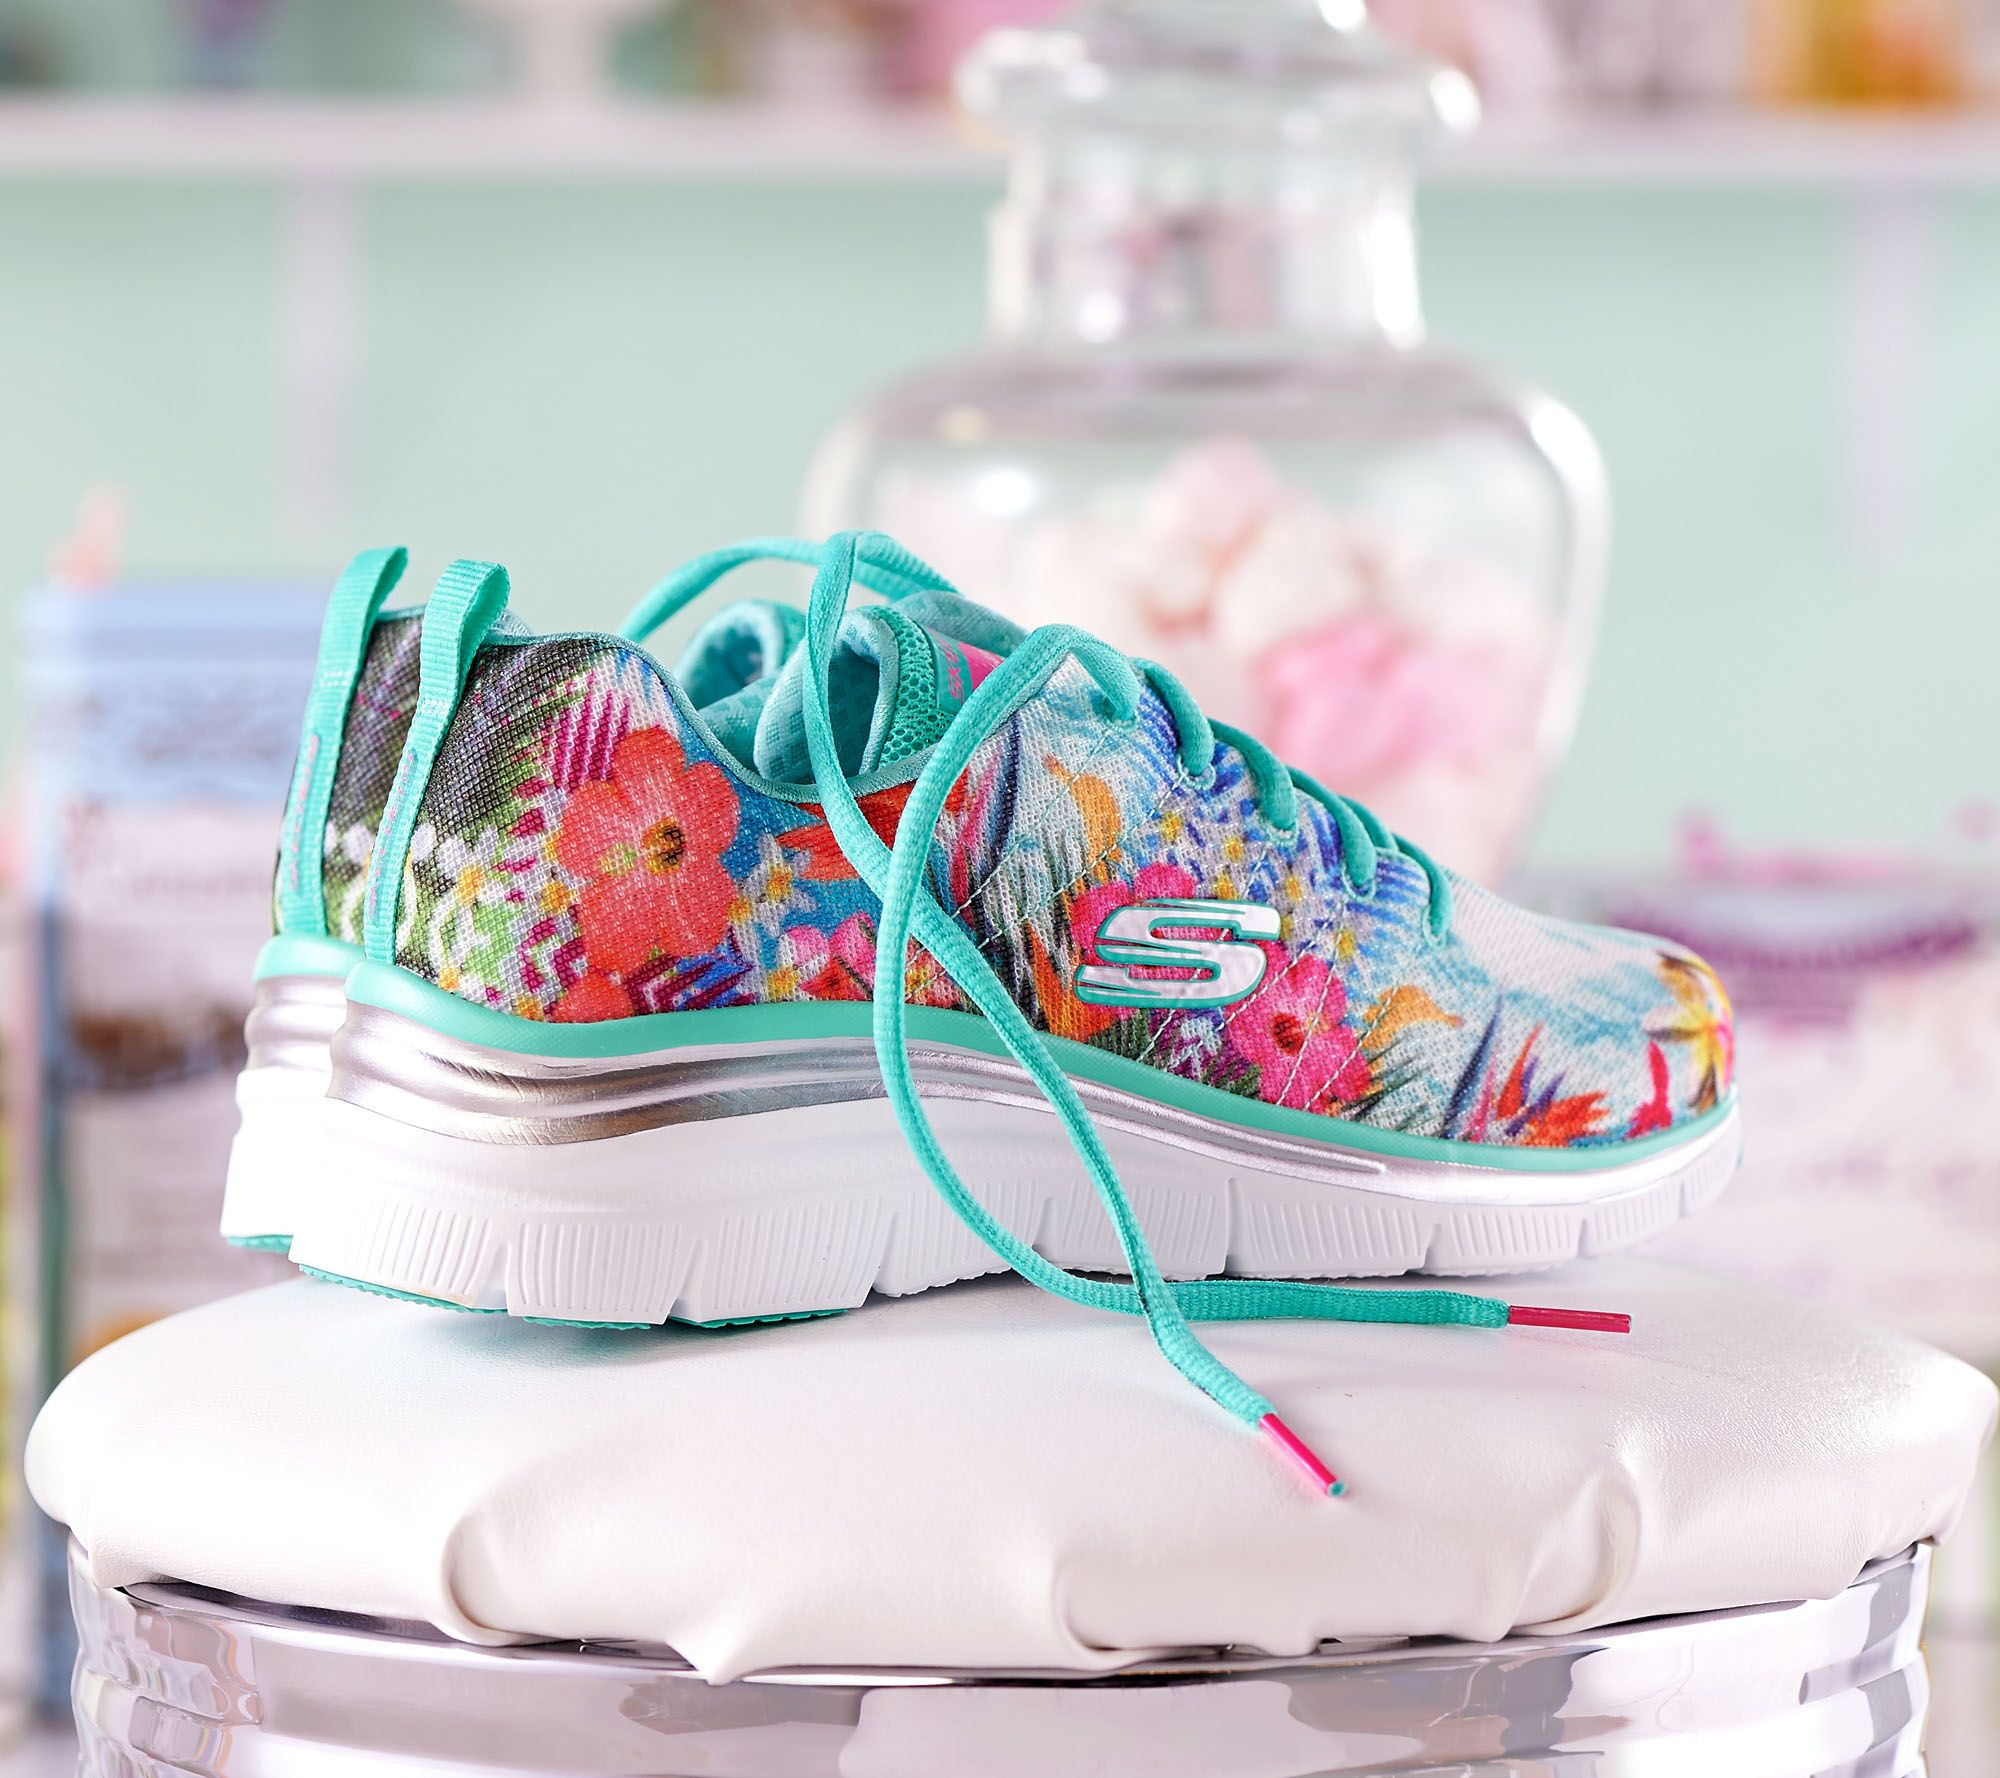 d74a654cddff Skechers Tropical Print Sneaker Wedges - Spring Essential - Page 1 — QVC.com